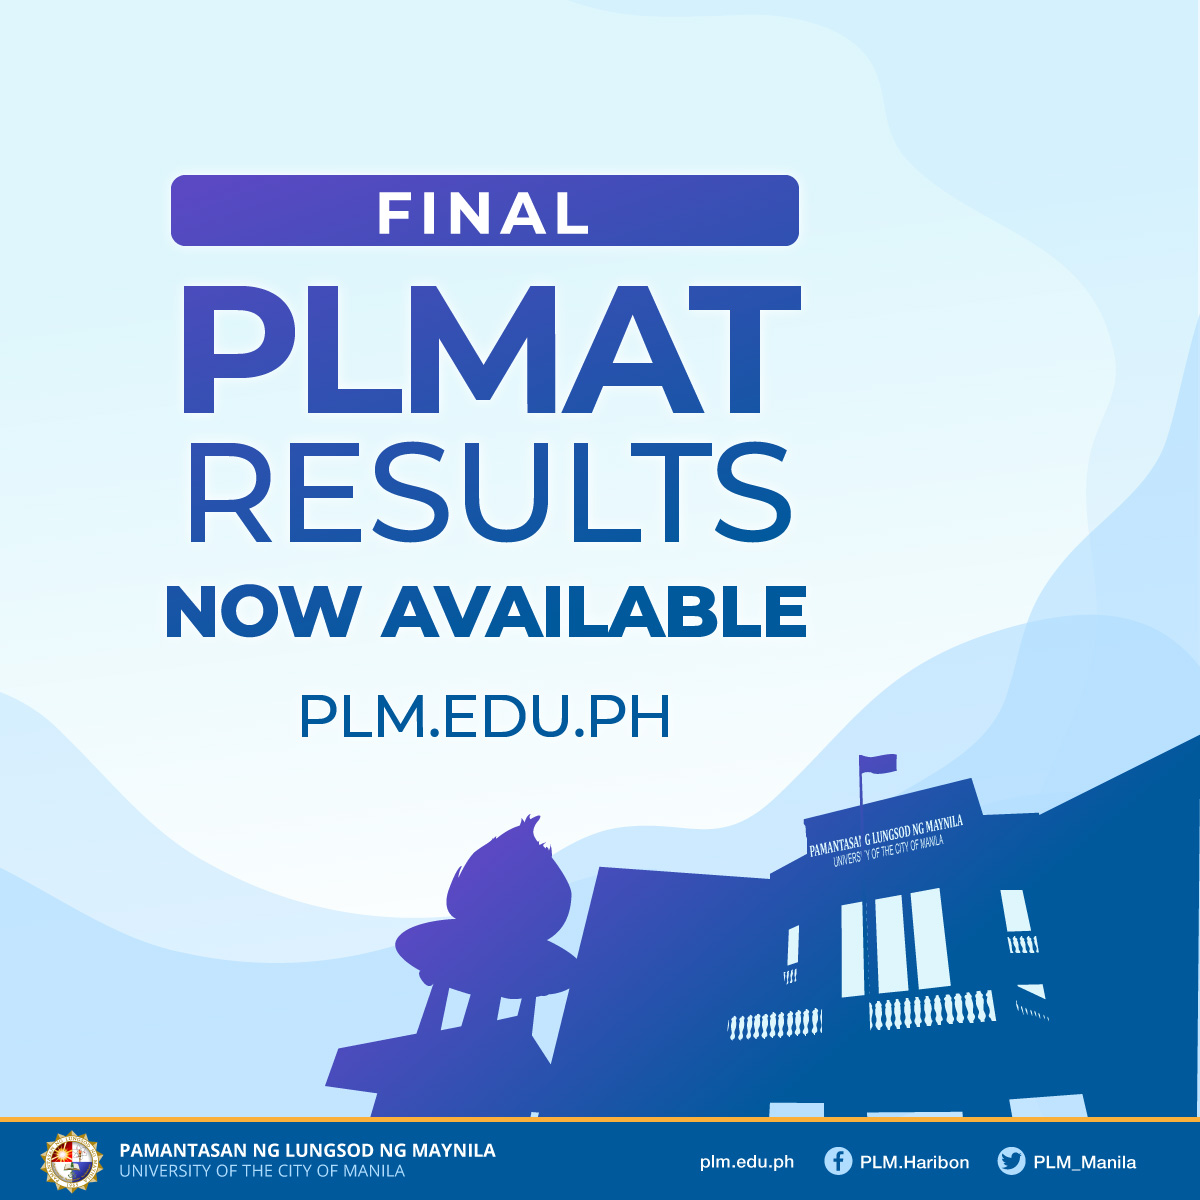 PLM accepts 6,705 freshmen students for Academic Year 2020-2021